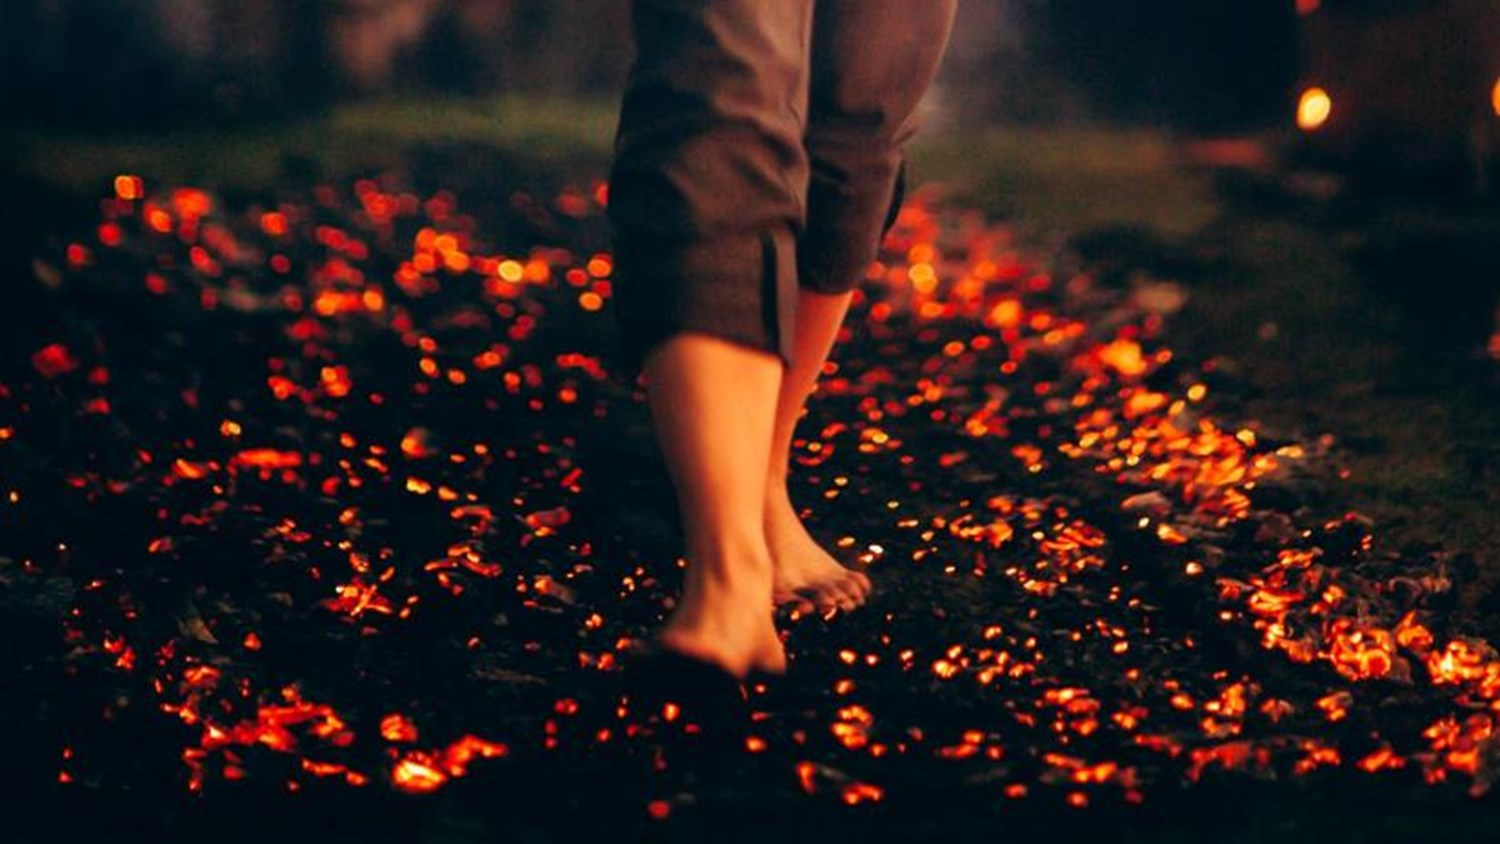 We Love MCR Charity is looking for 'brave soles' to take part in its sponsored firewalk challenge, The Manc